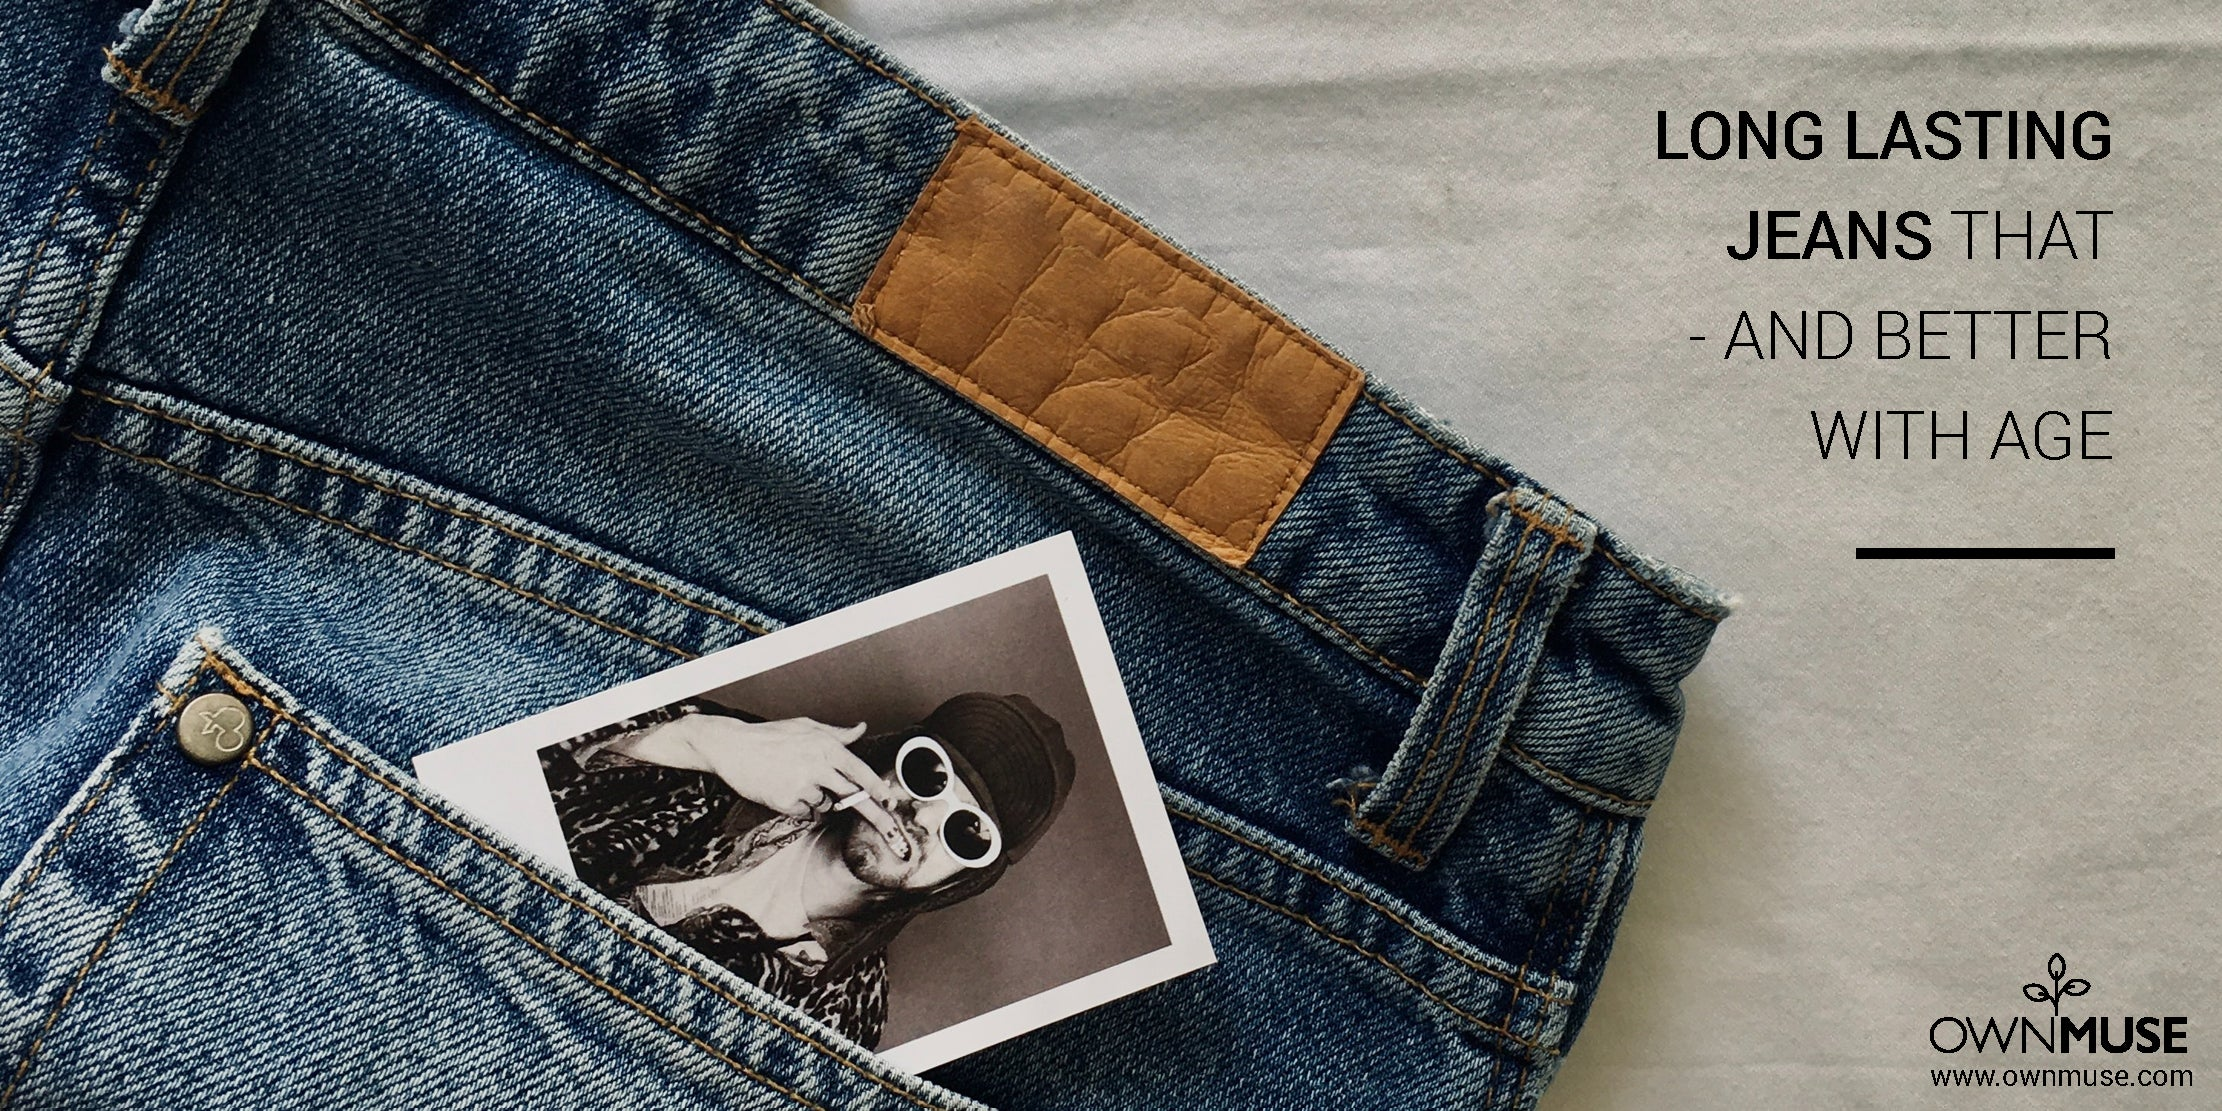 Sustainable and Ethical Jeans